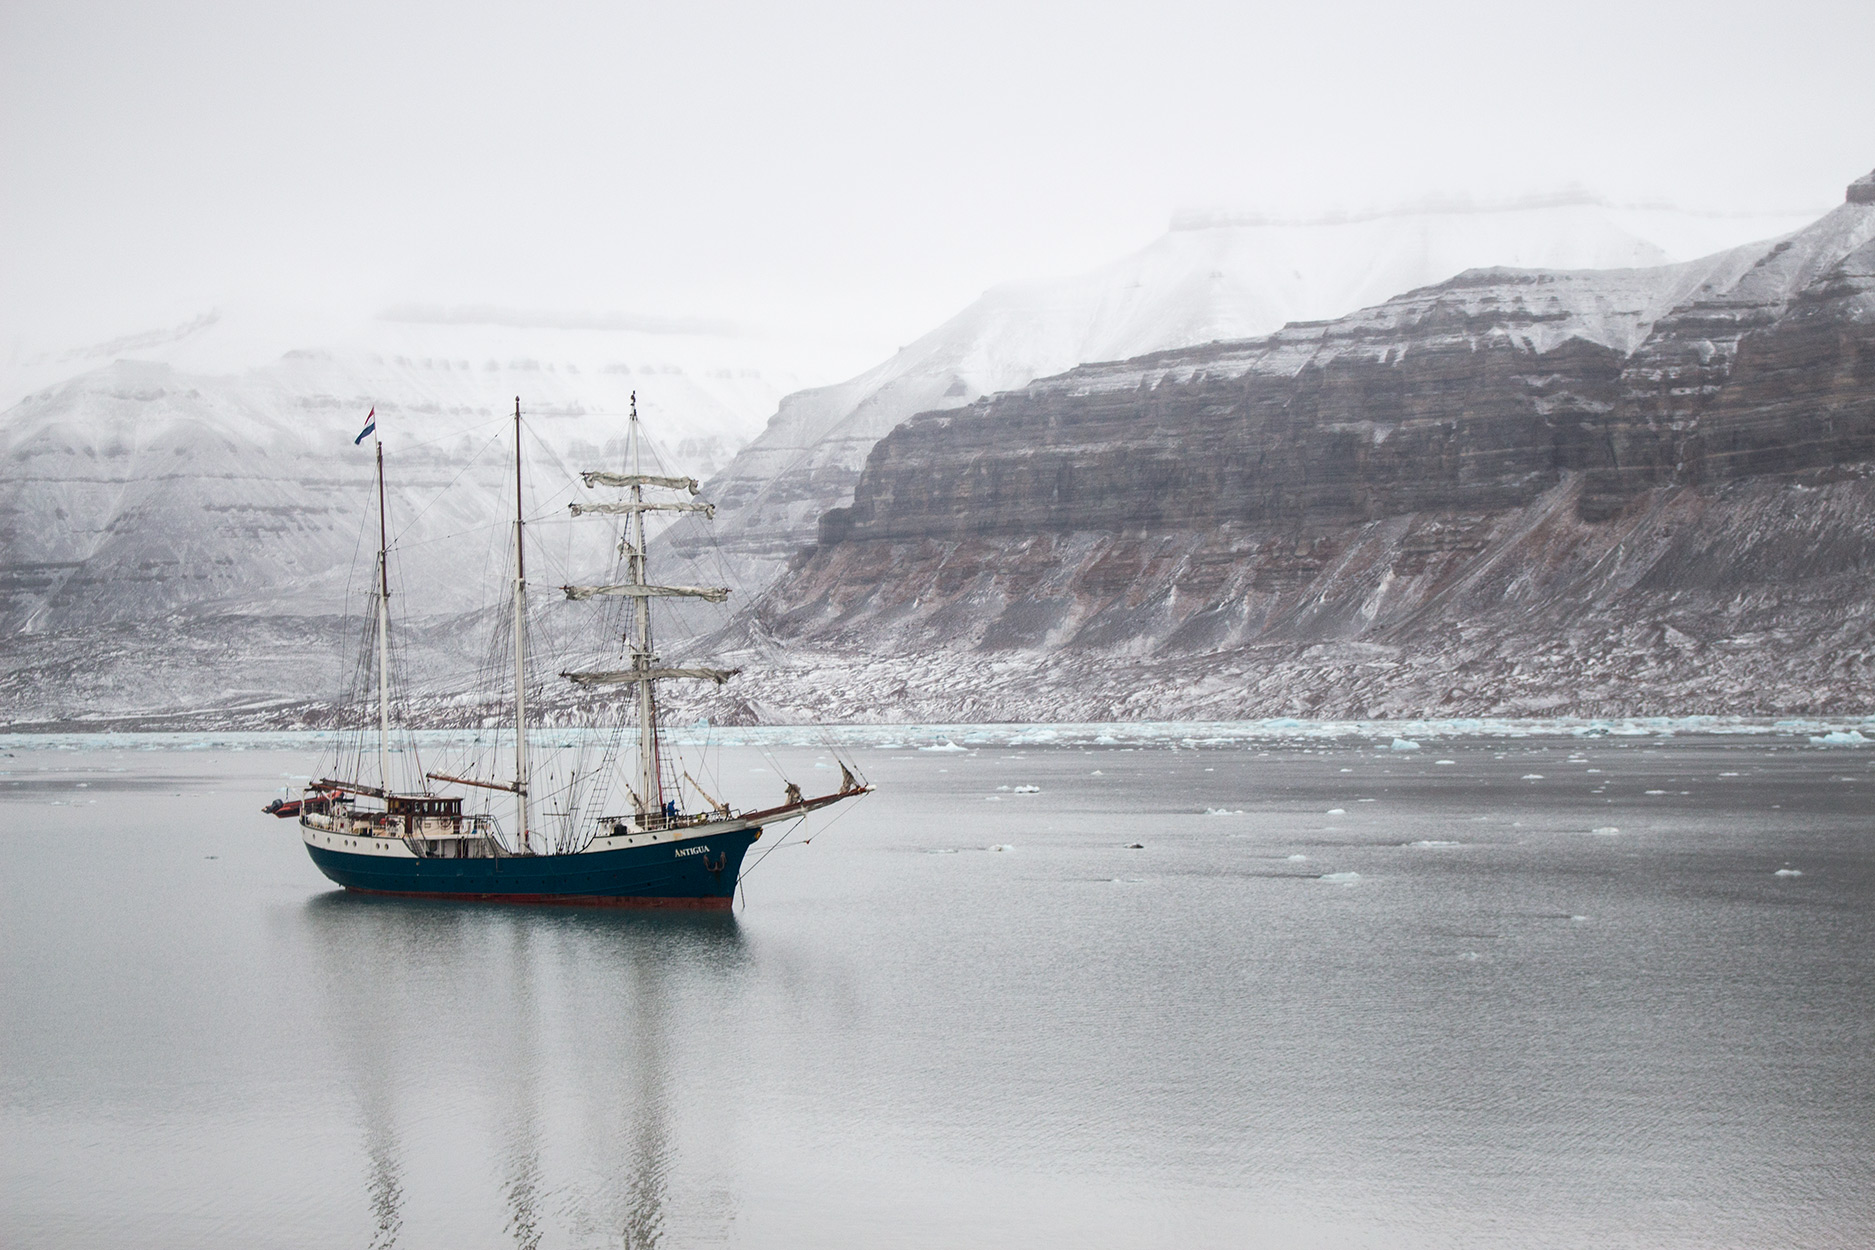 The tall ship Antigua anchored in Svalbard